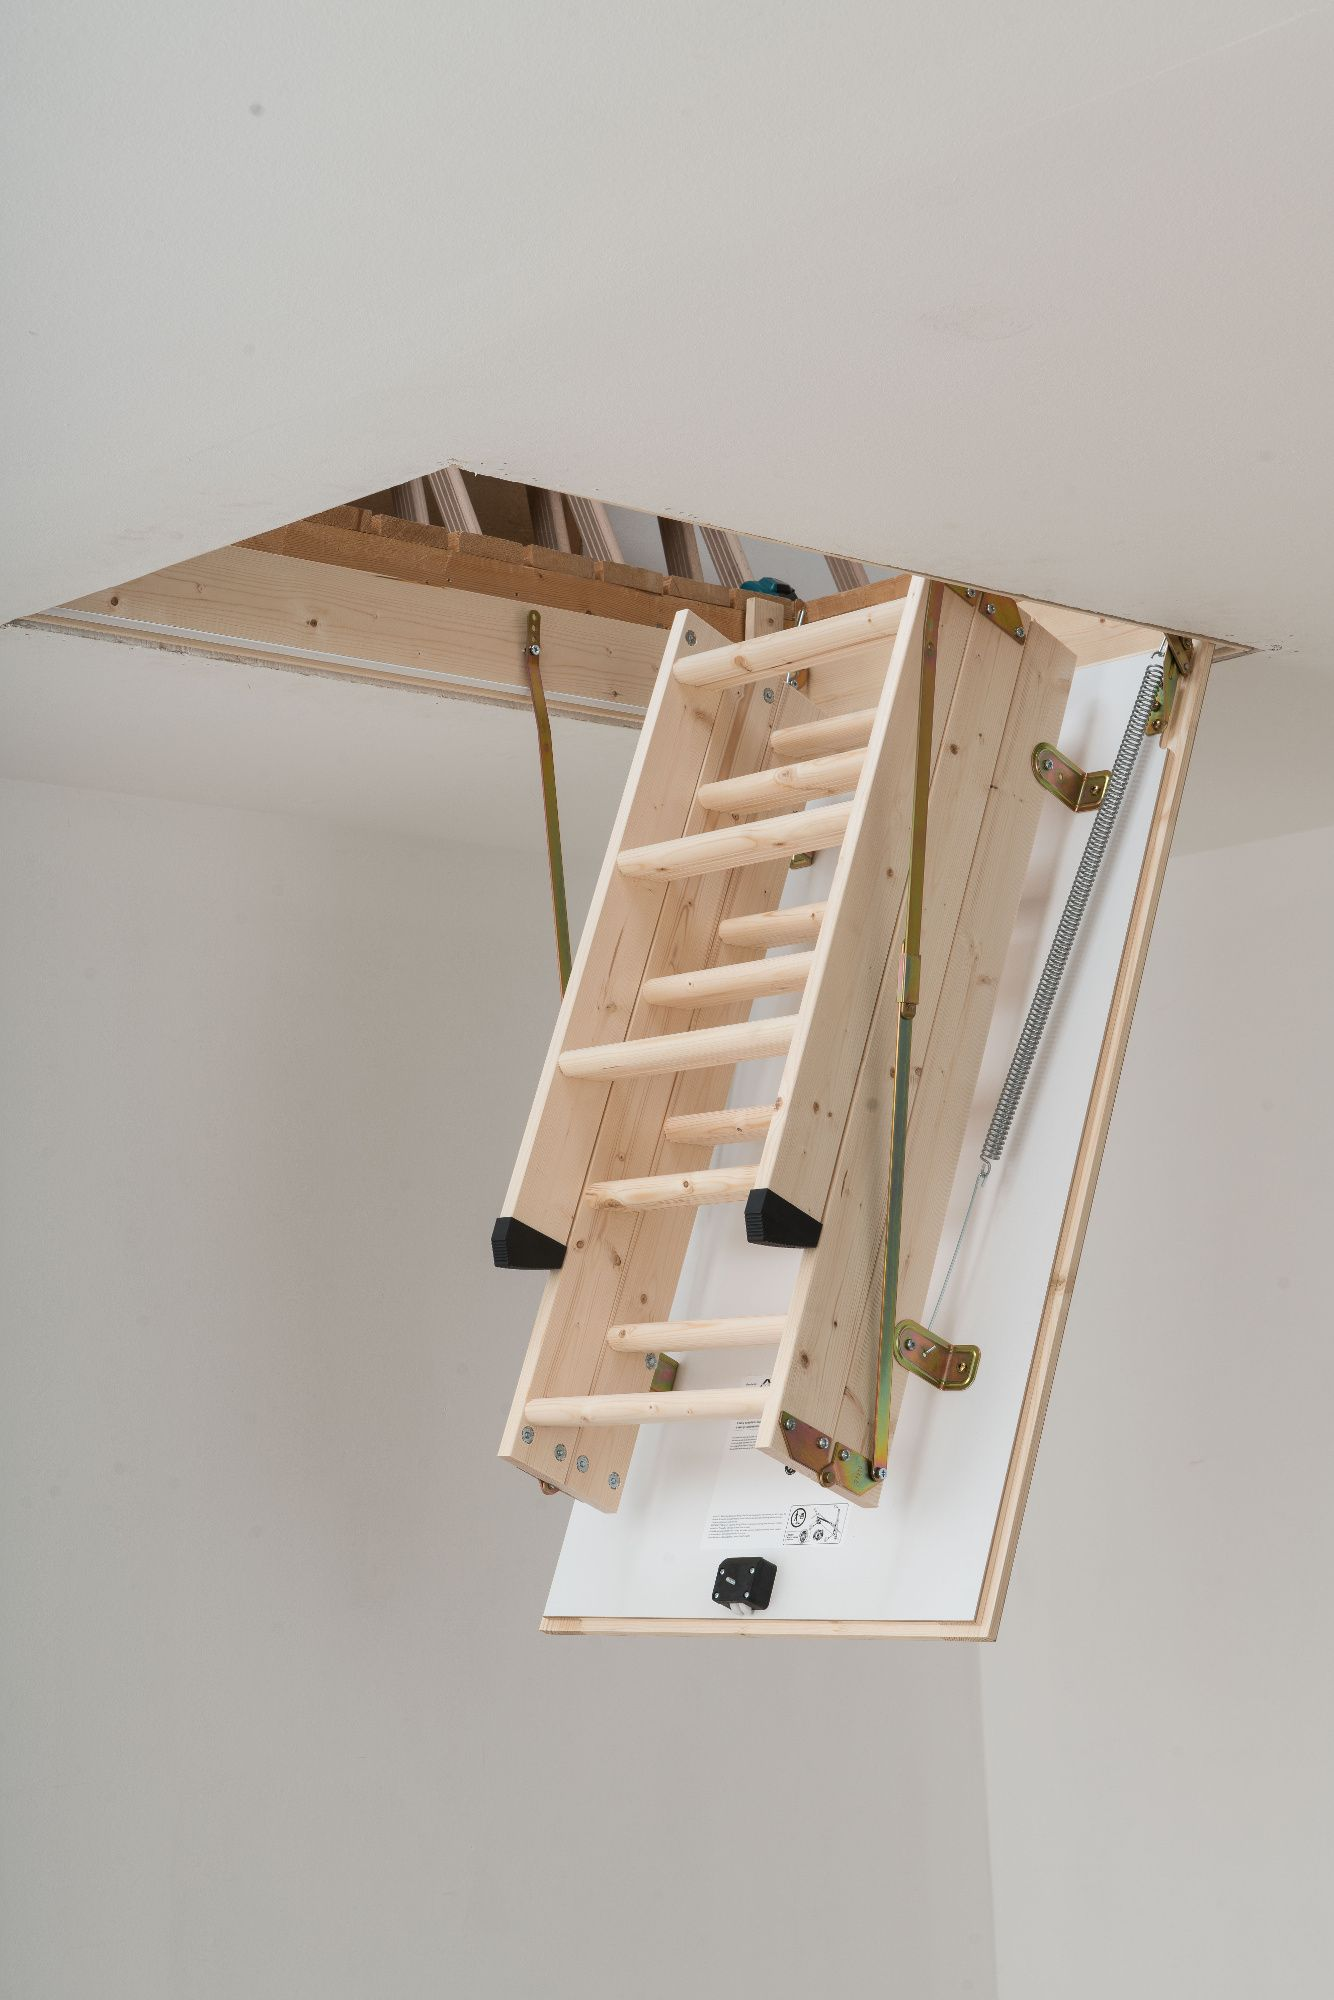 Dolle Hobby Timber Folding Loft Ladder To Suit An Opening Size Of 1200 X 700mm From 162 00 Inc Vat Uk Mainland Delivery Loft Stairs Folding Attic Stairs House Plan With Loft